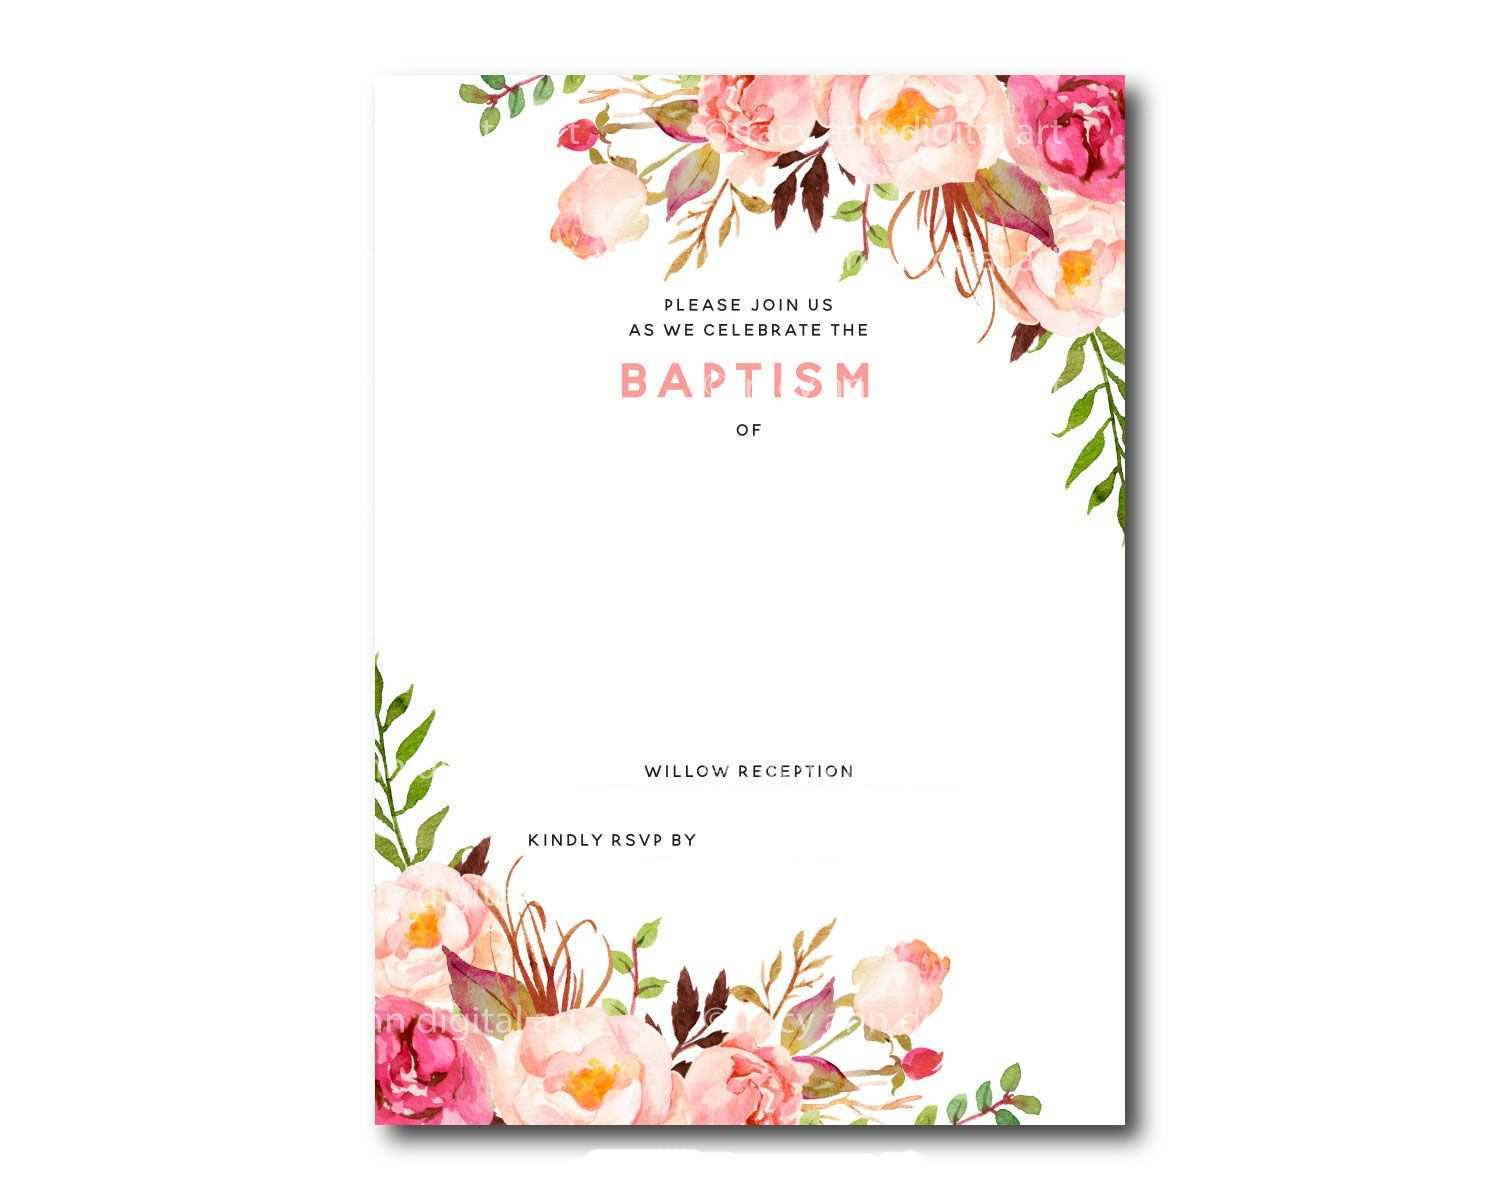 78 Printable Blank Baptism Invitation Template in Word for Blank Baptism  Invitation Template - Cards Design Templates